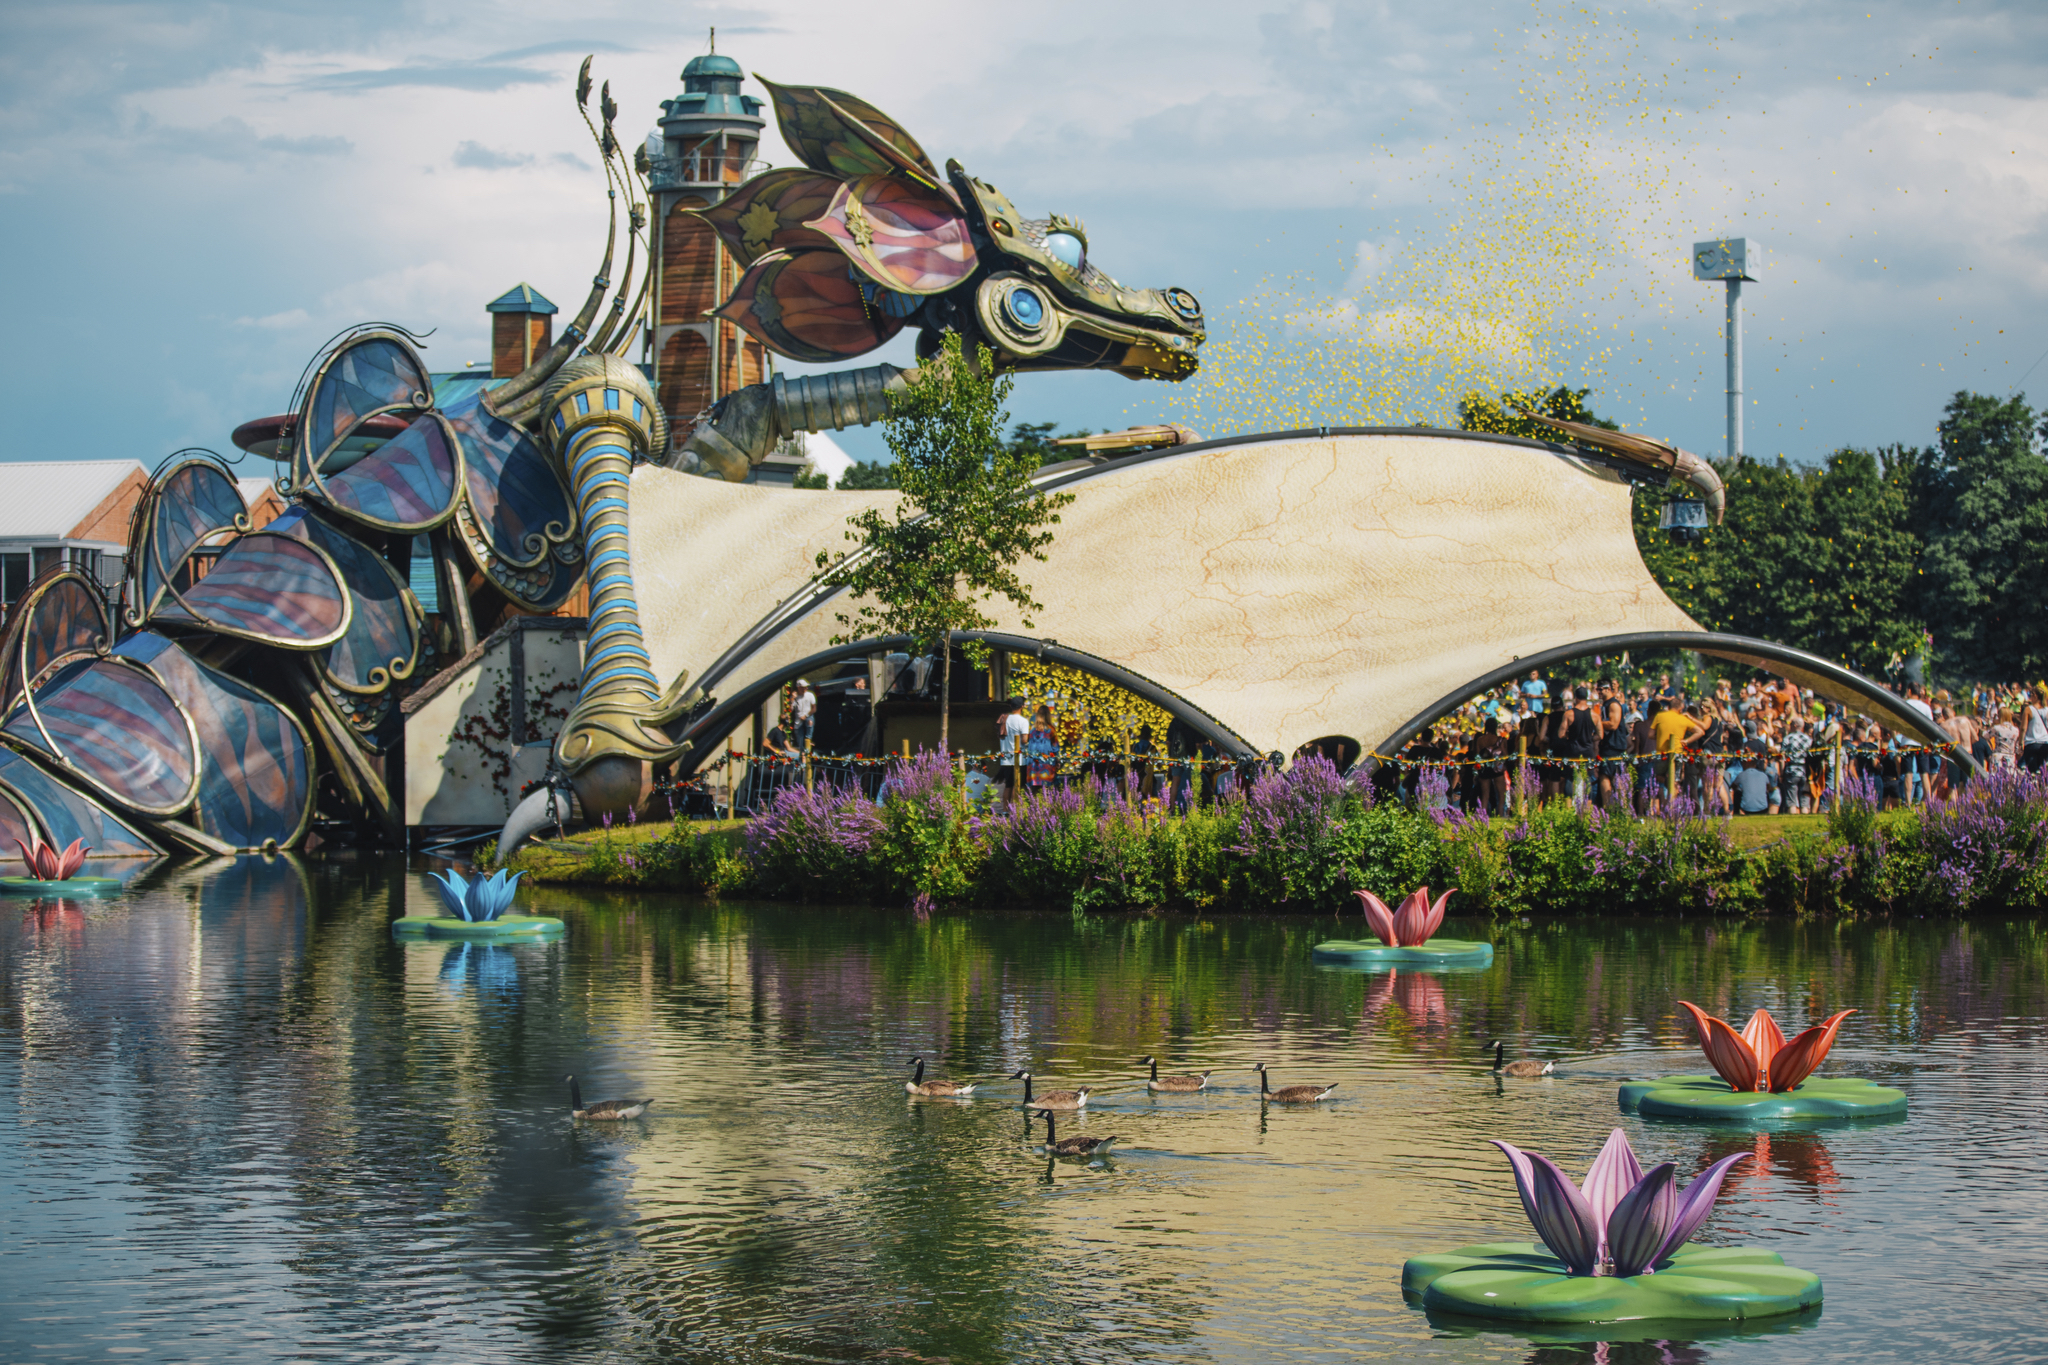 Tomorrowland Rose Garden